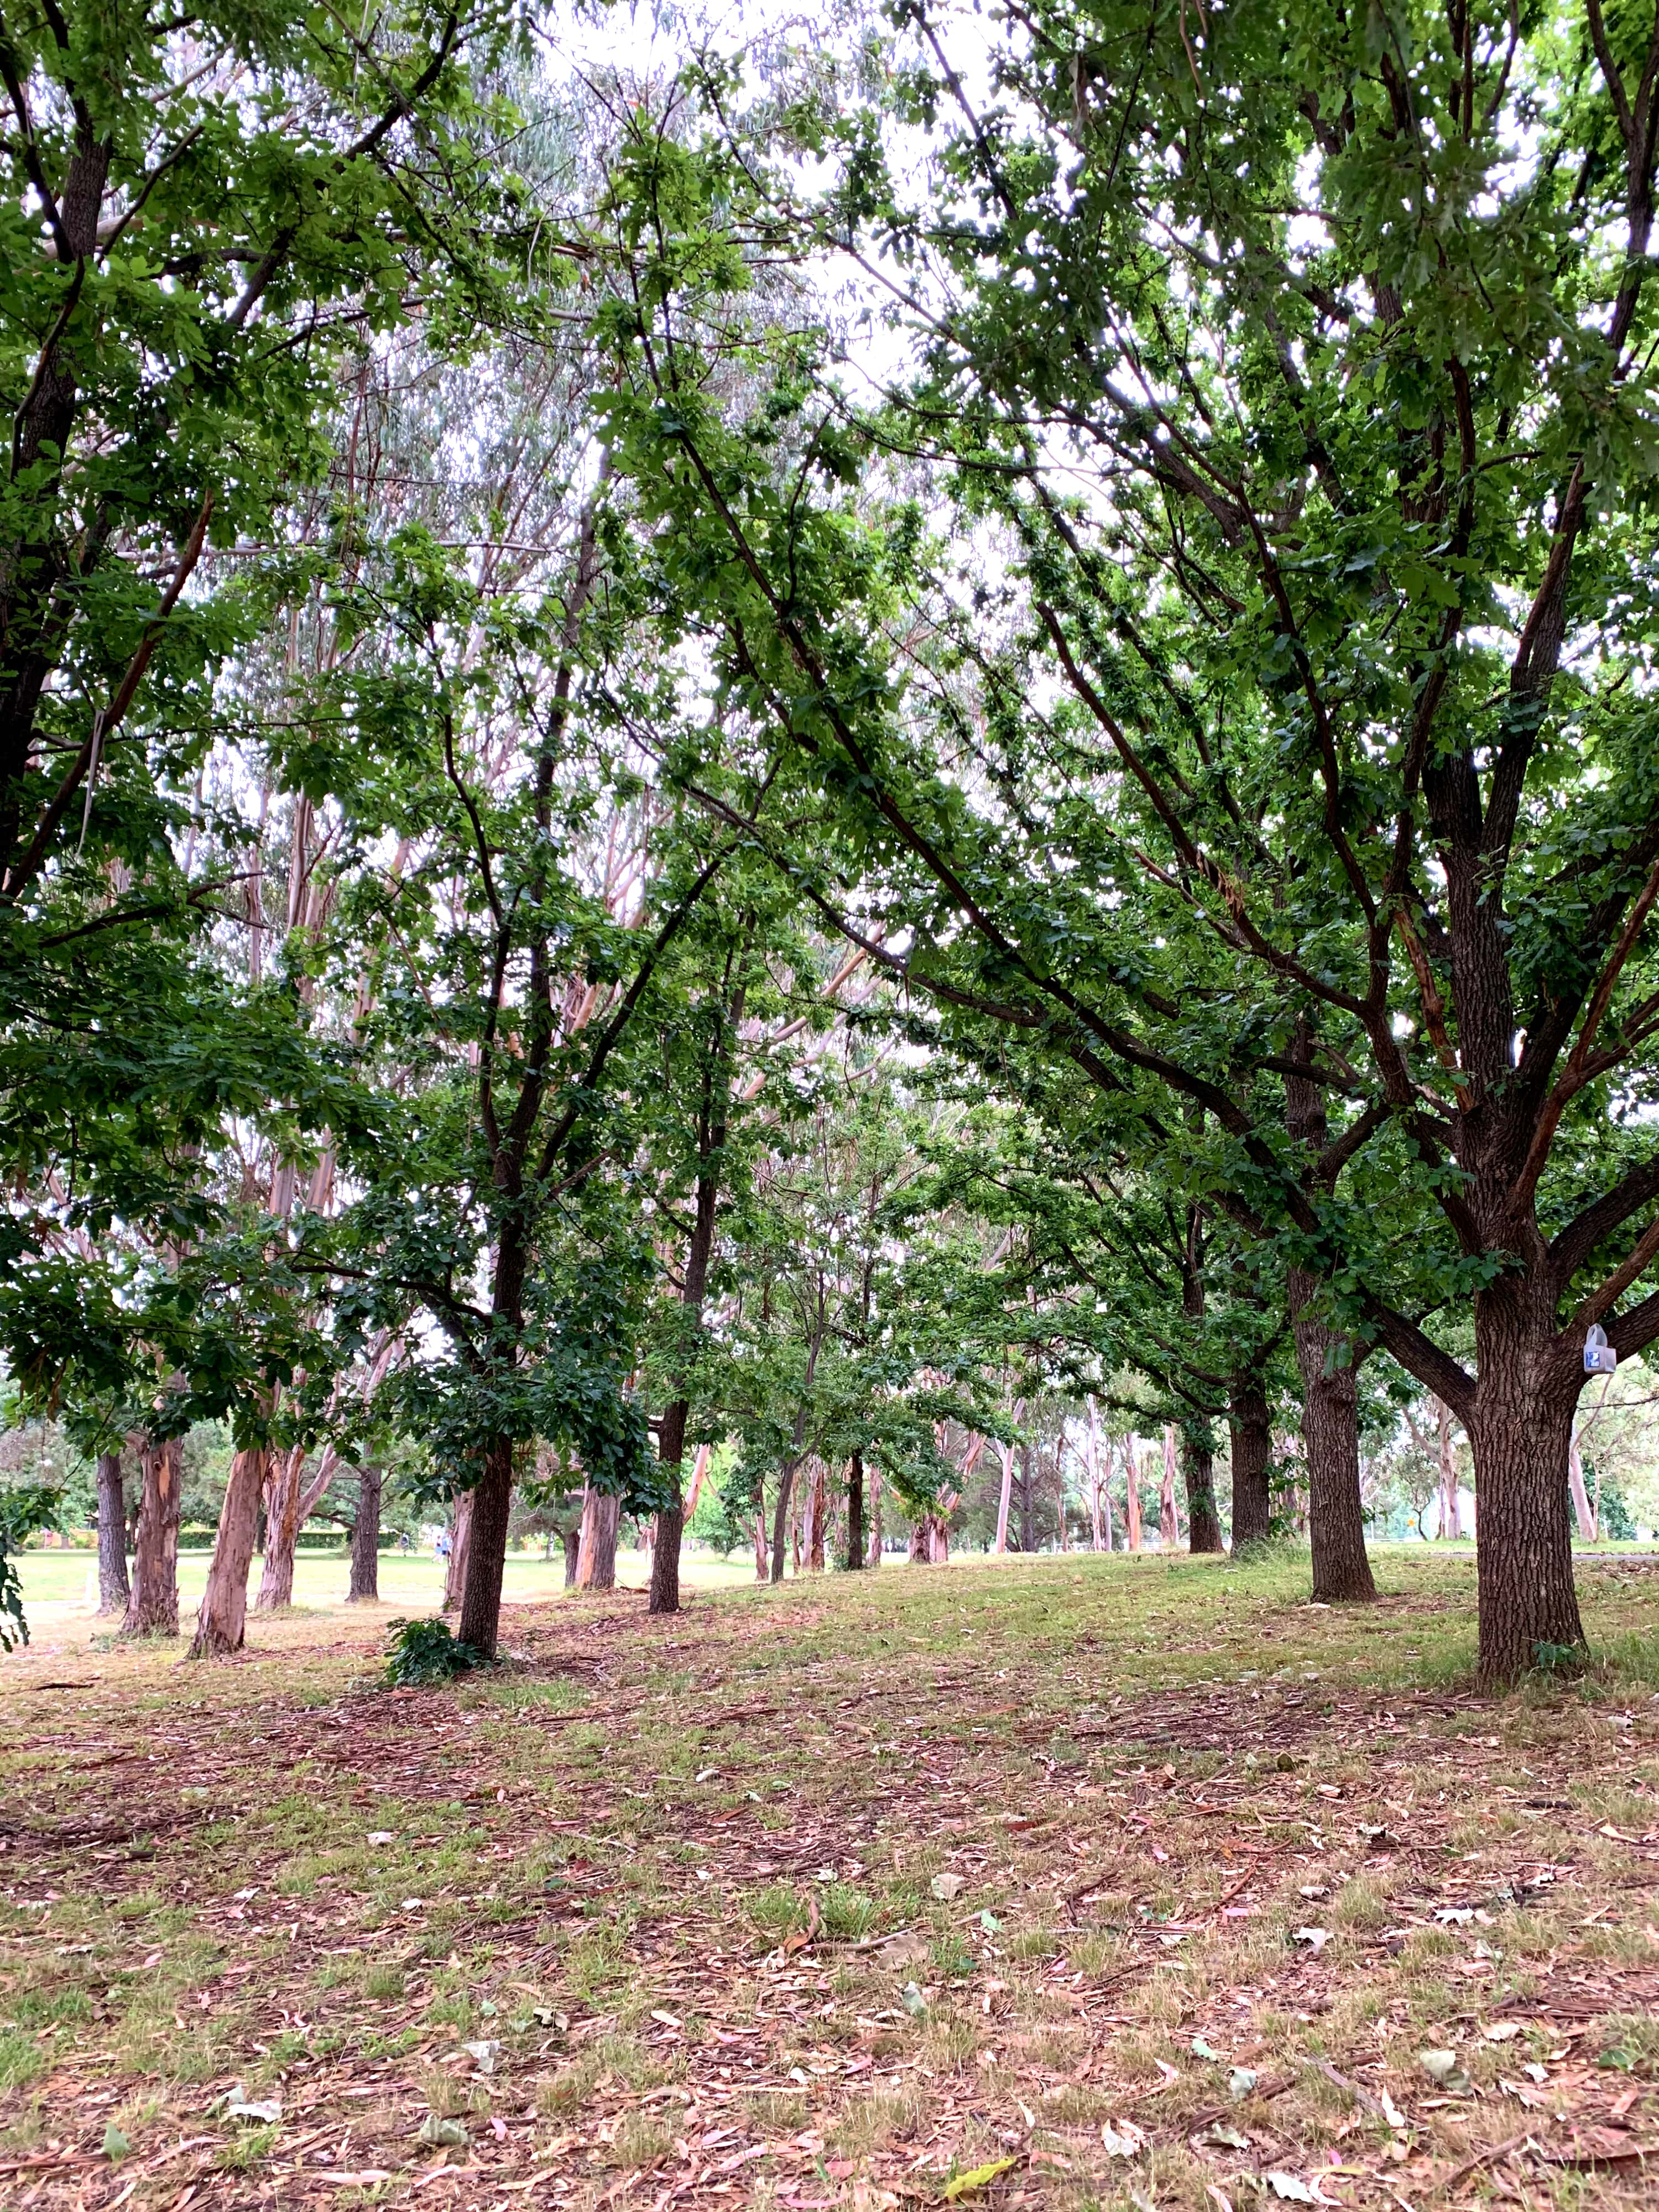 Footpath lined with trees, Canberra